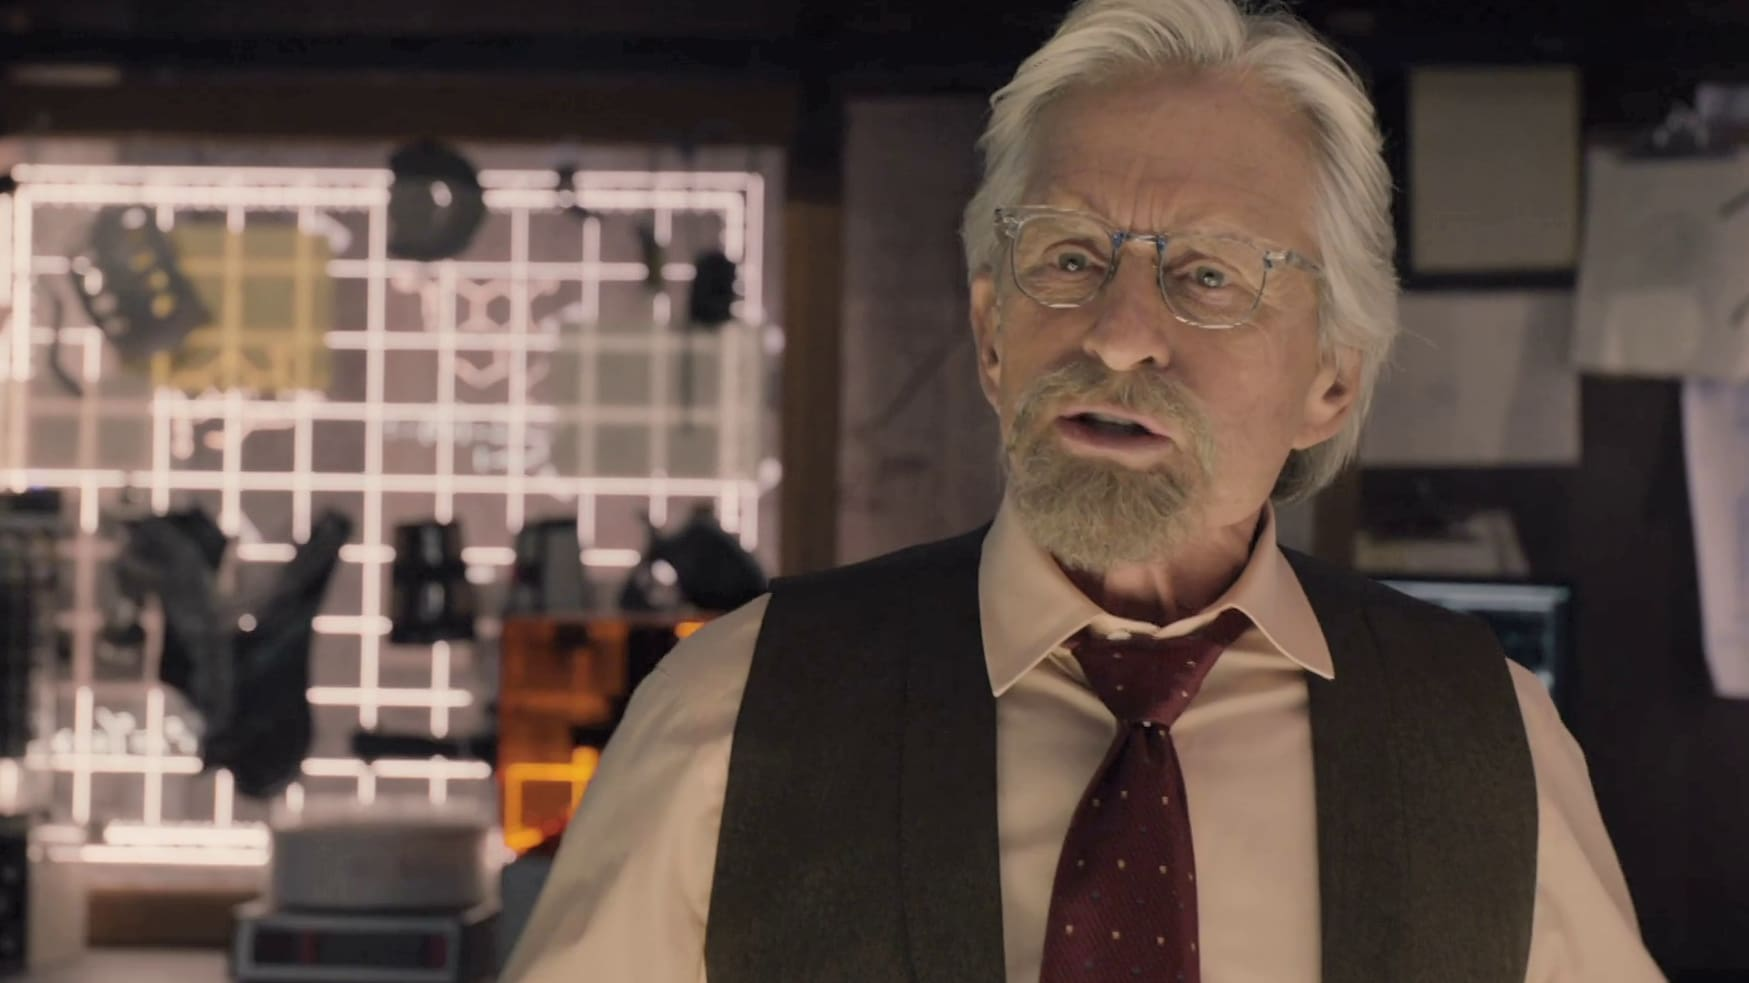 Call The Avengers | Ant-Man Film Clip